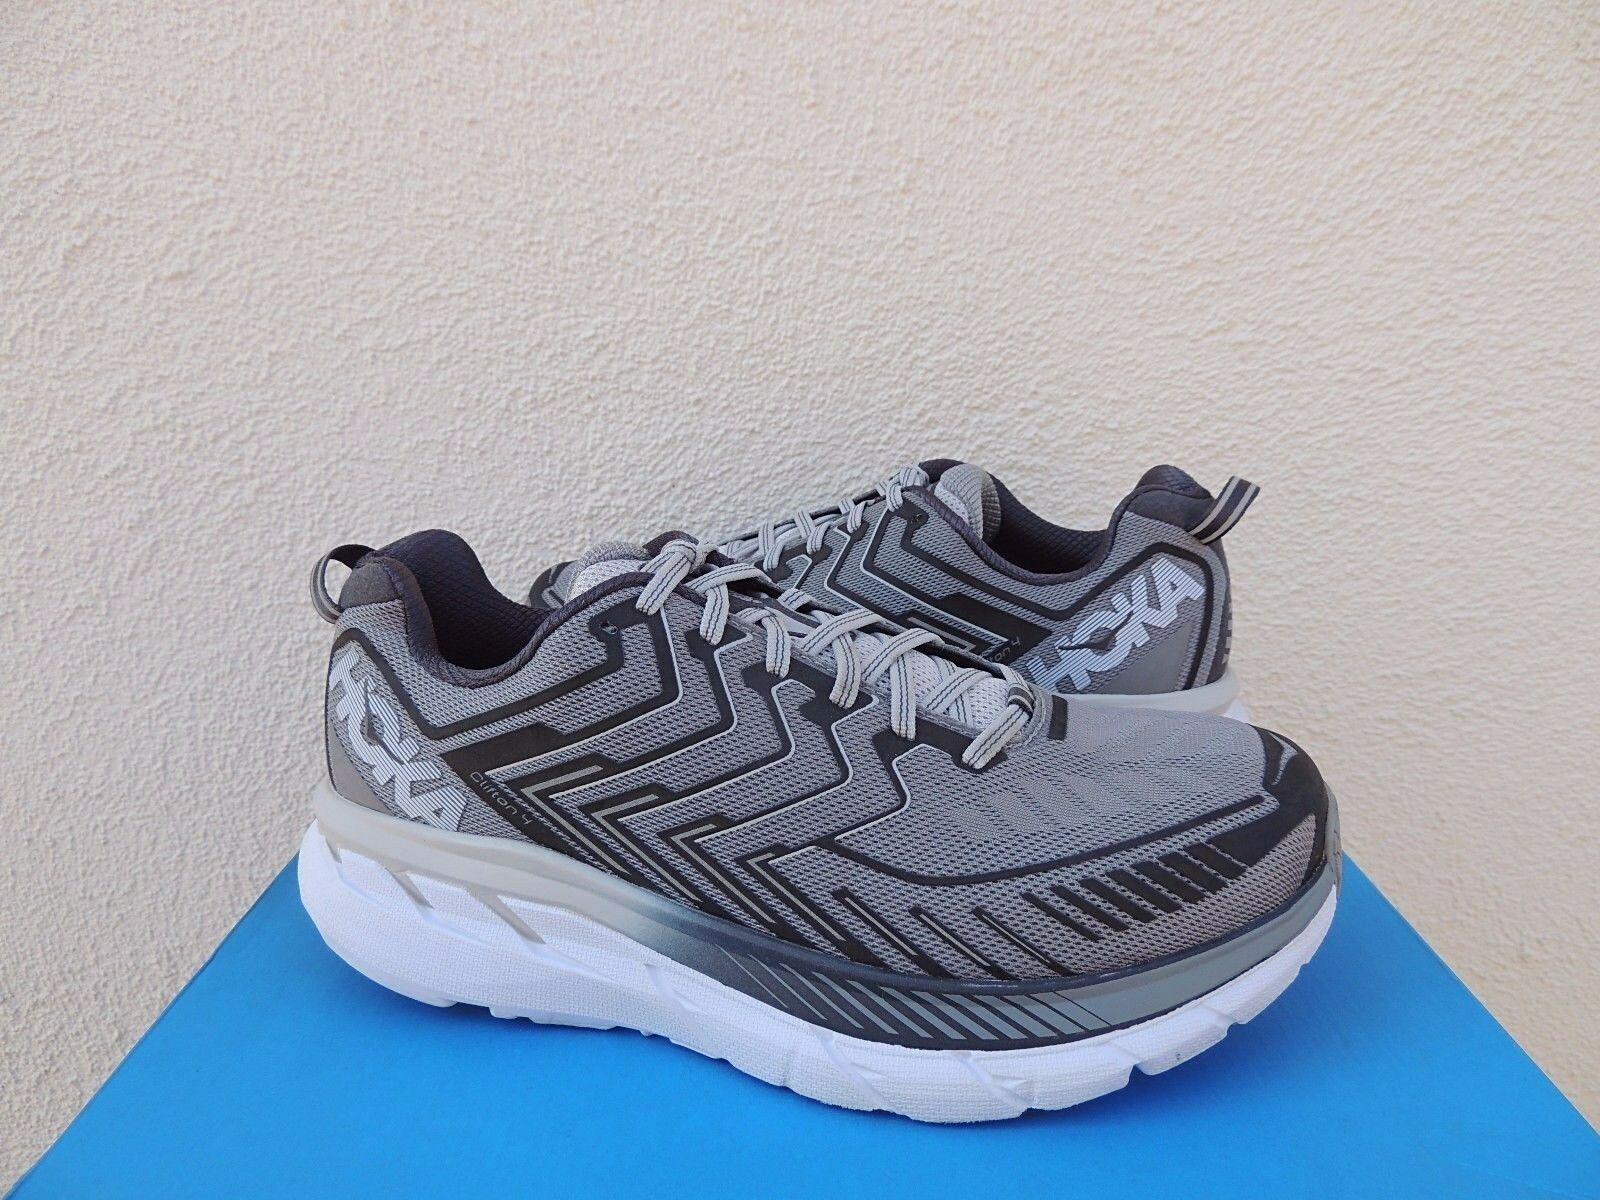 HOKA ONE ONE CLIFTON 4 WIDE GRIFFIN grau RUNNING schuhe, MEN US 8.5 E  EUR 42 NEW